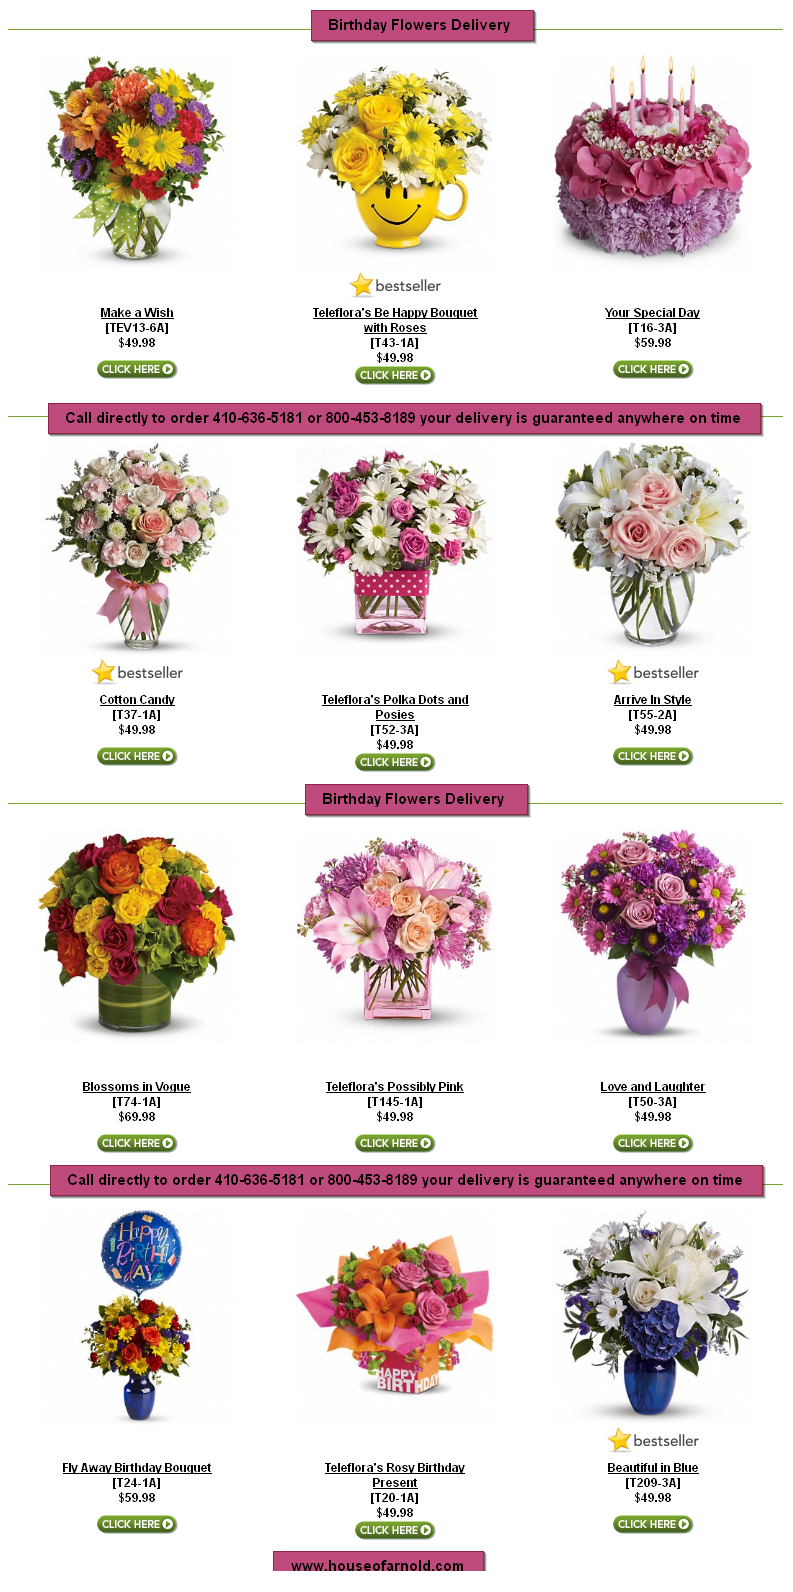 Same day delivery available birthday by house of arnold florist flower same day delivery available birthday izmirmasajfo